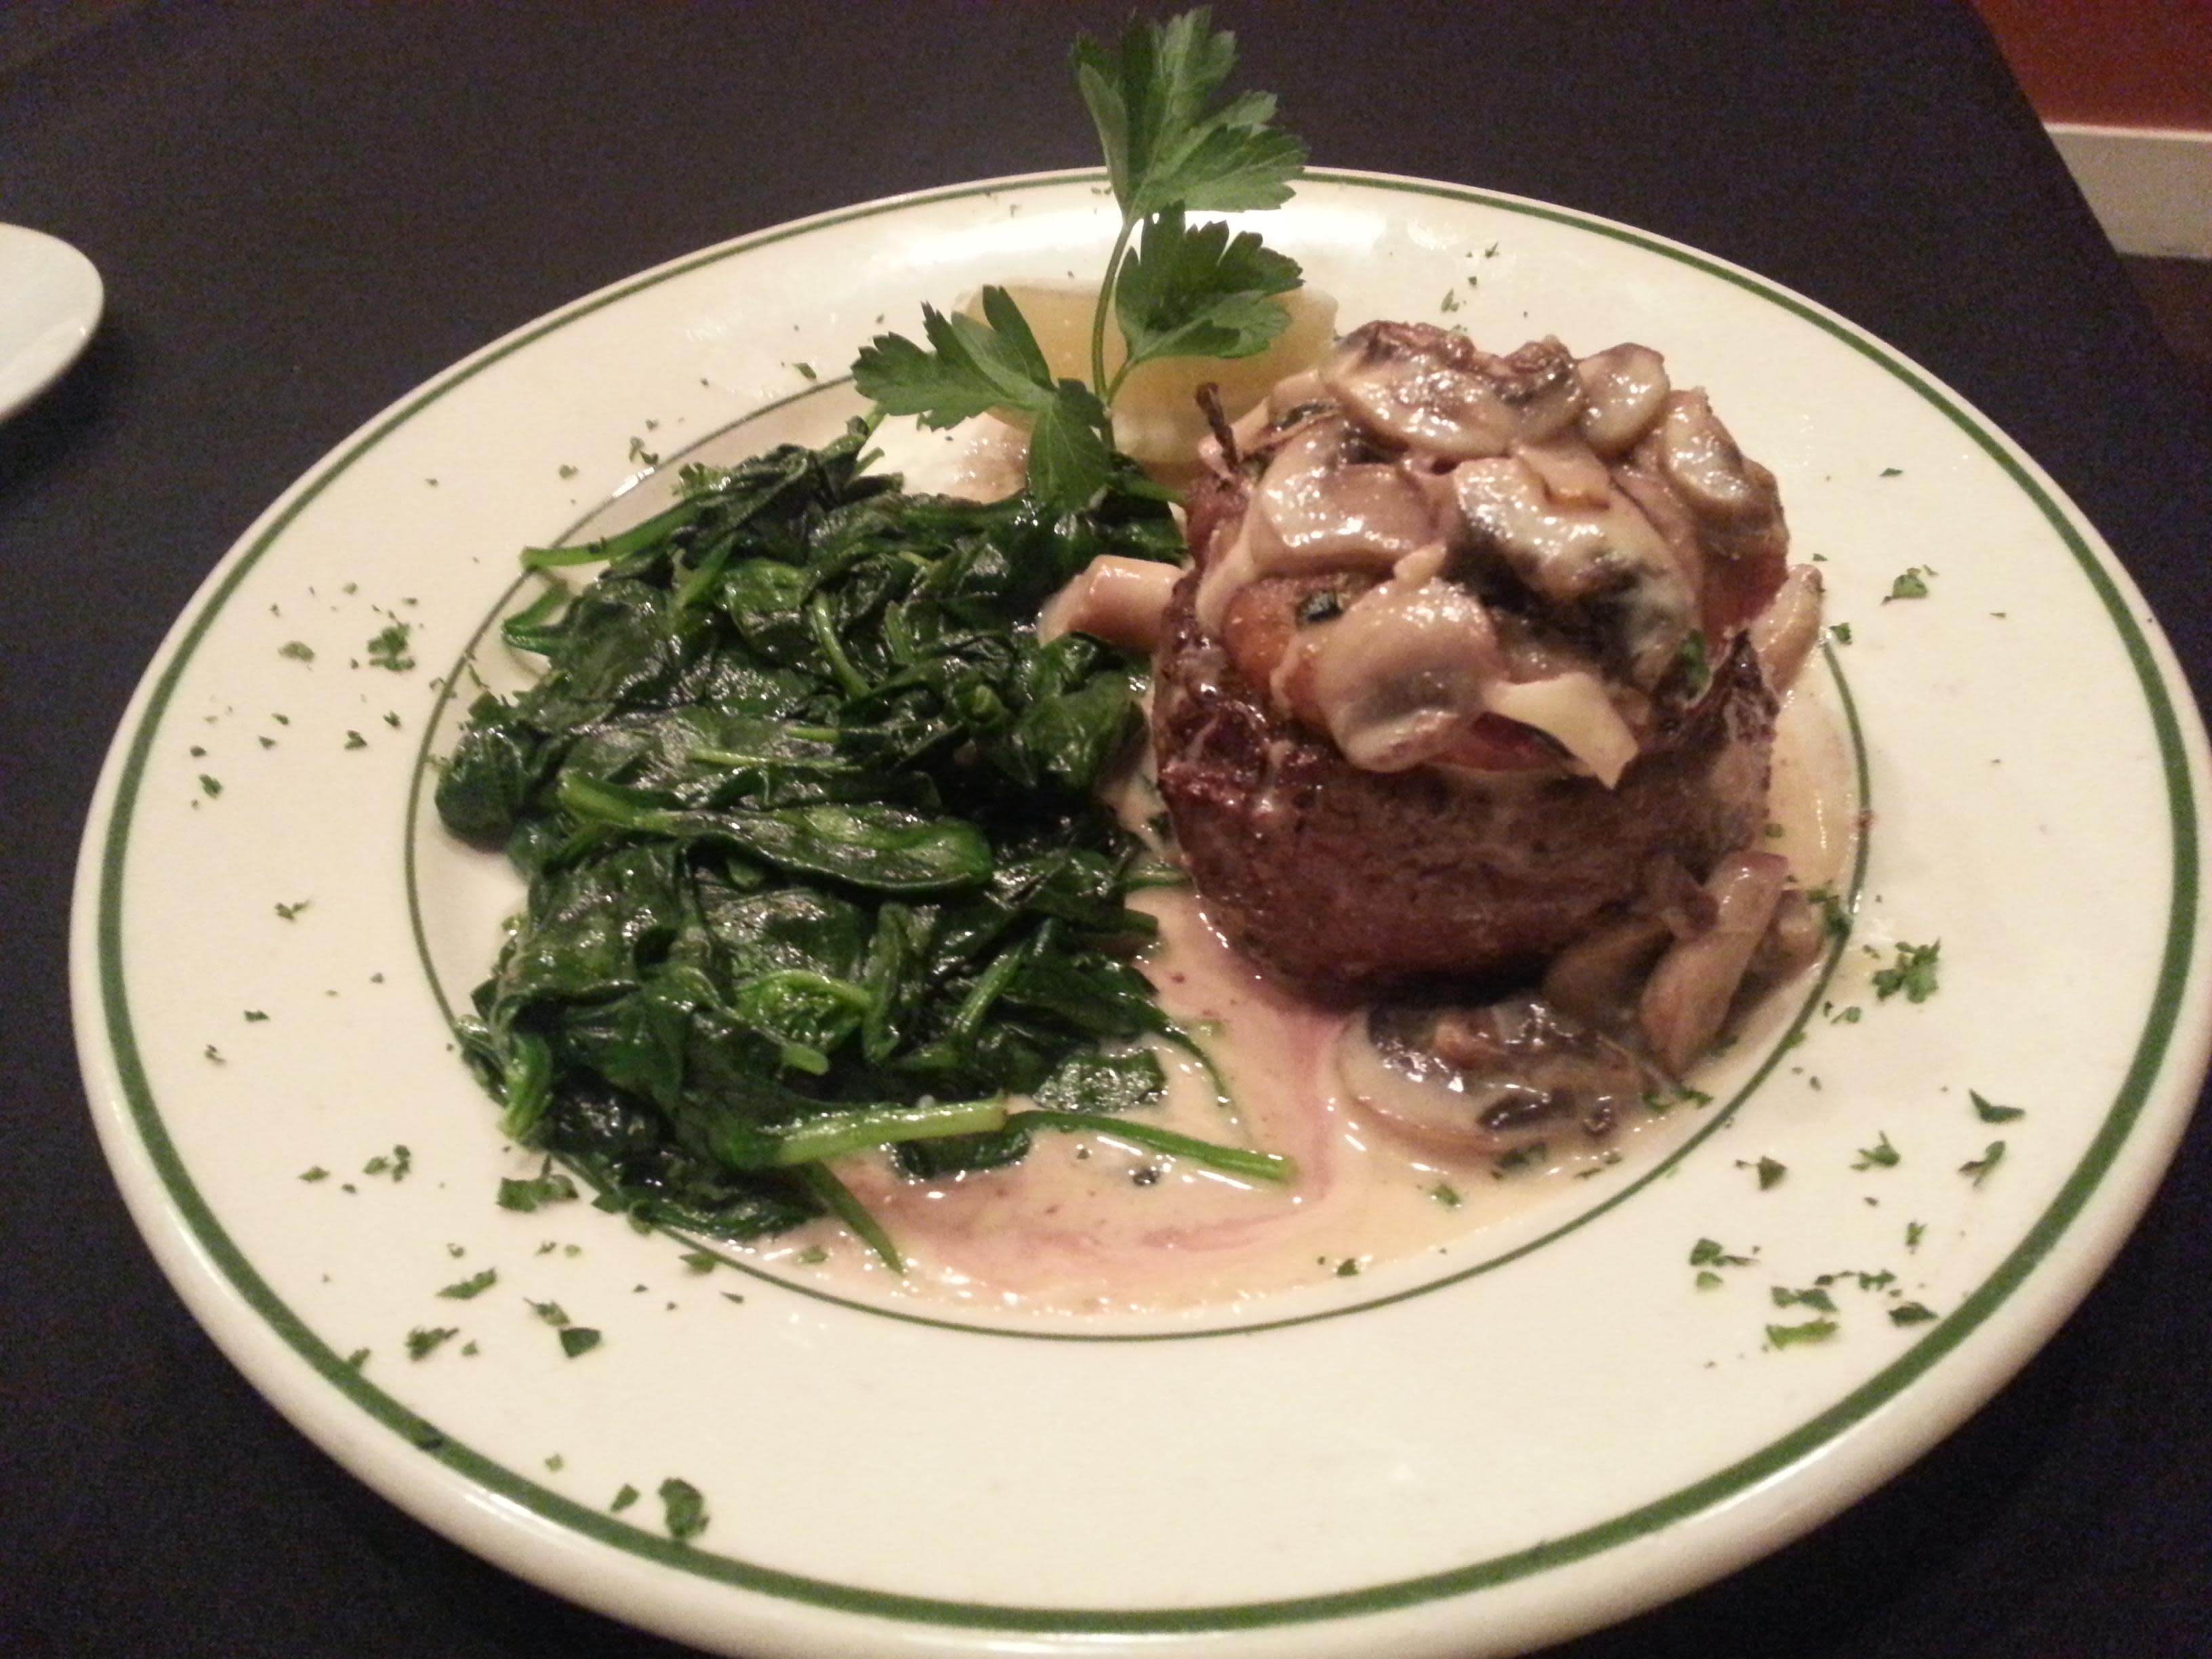 Crabcake Filet at Birraporetti's